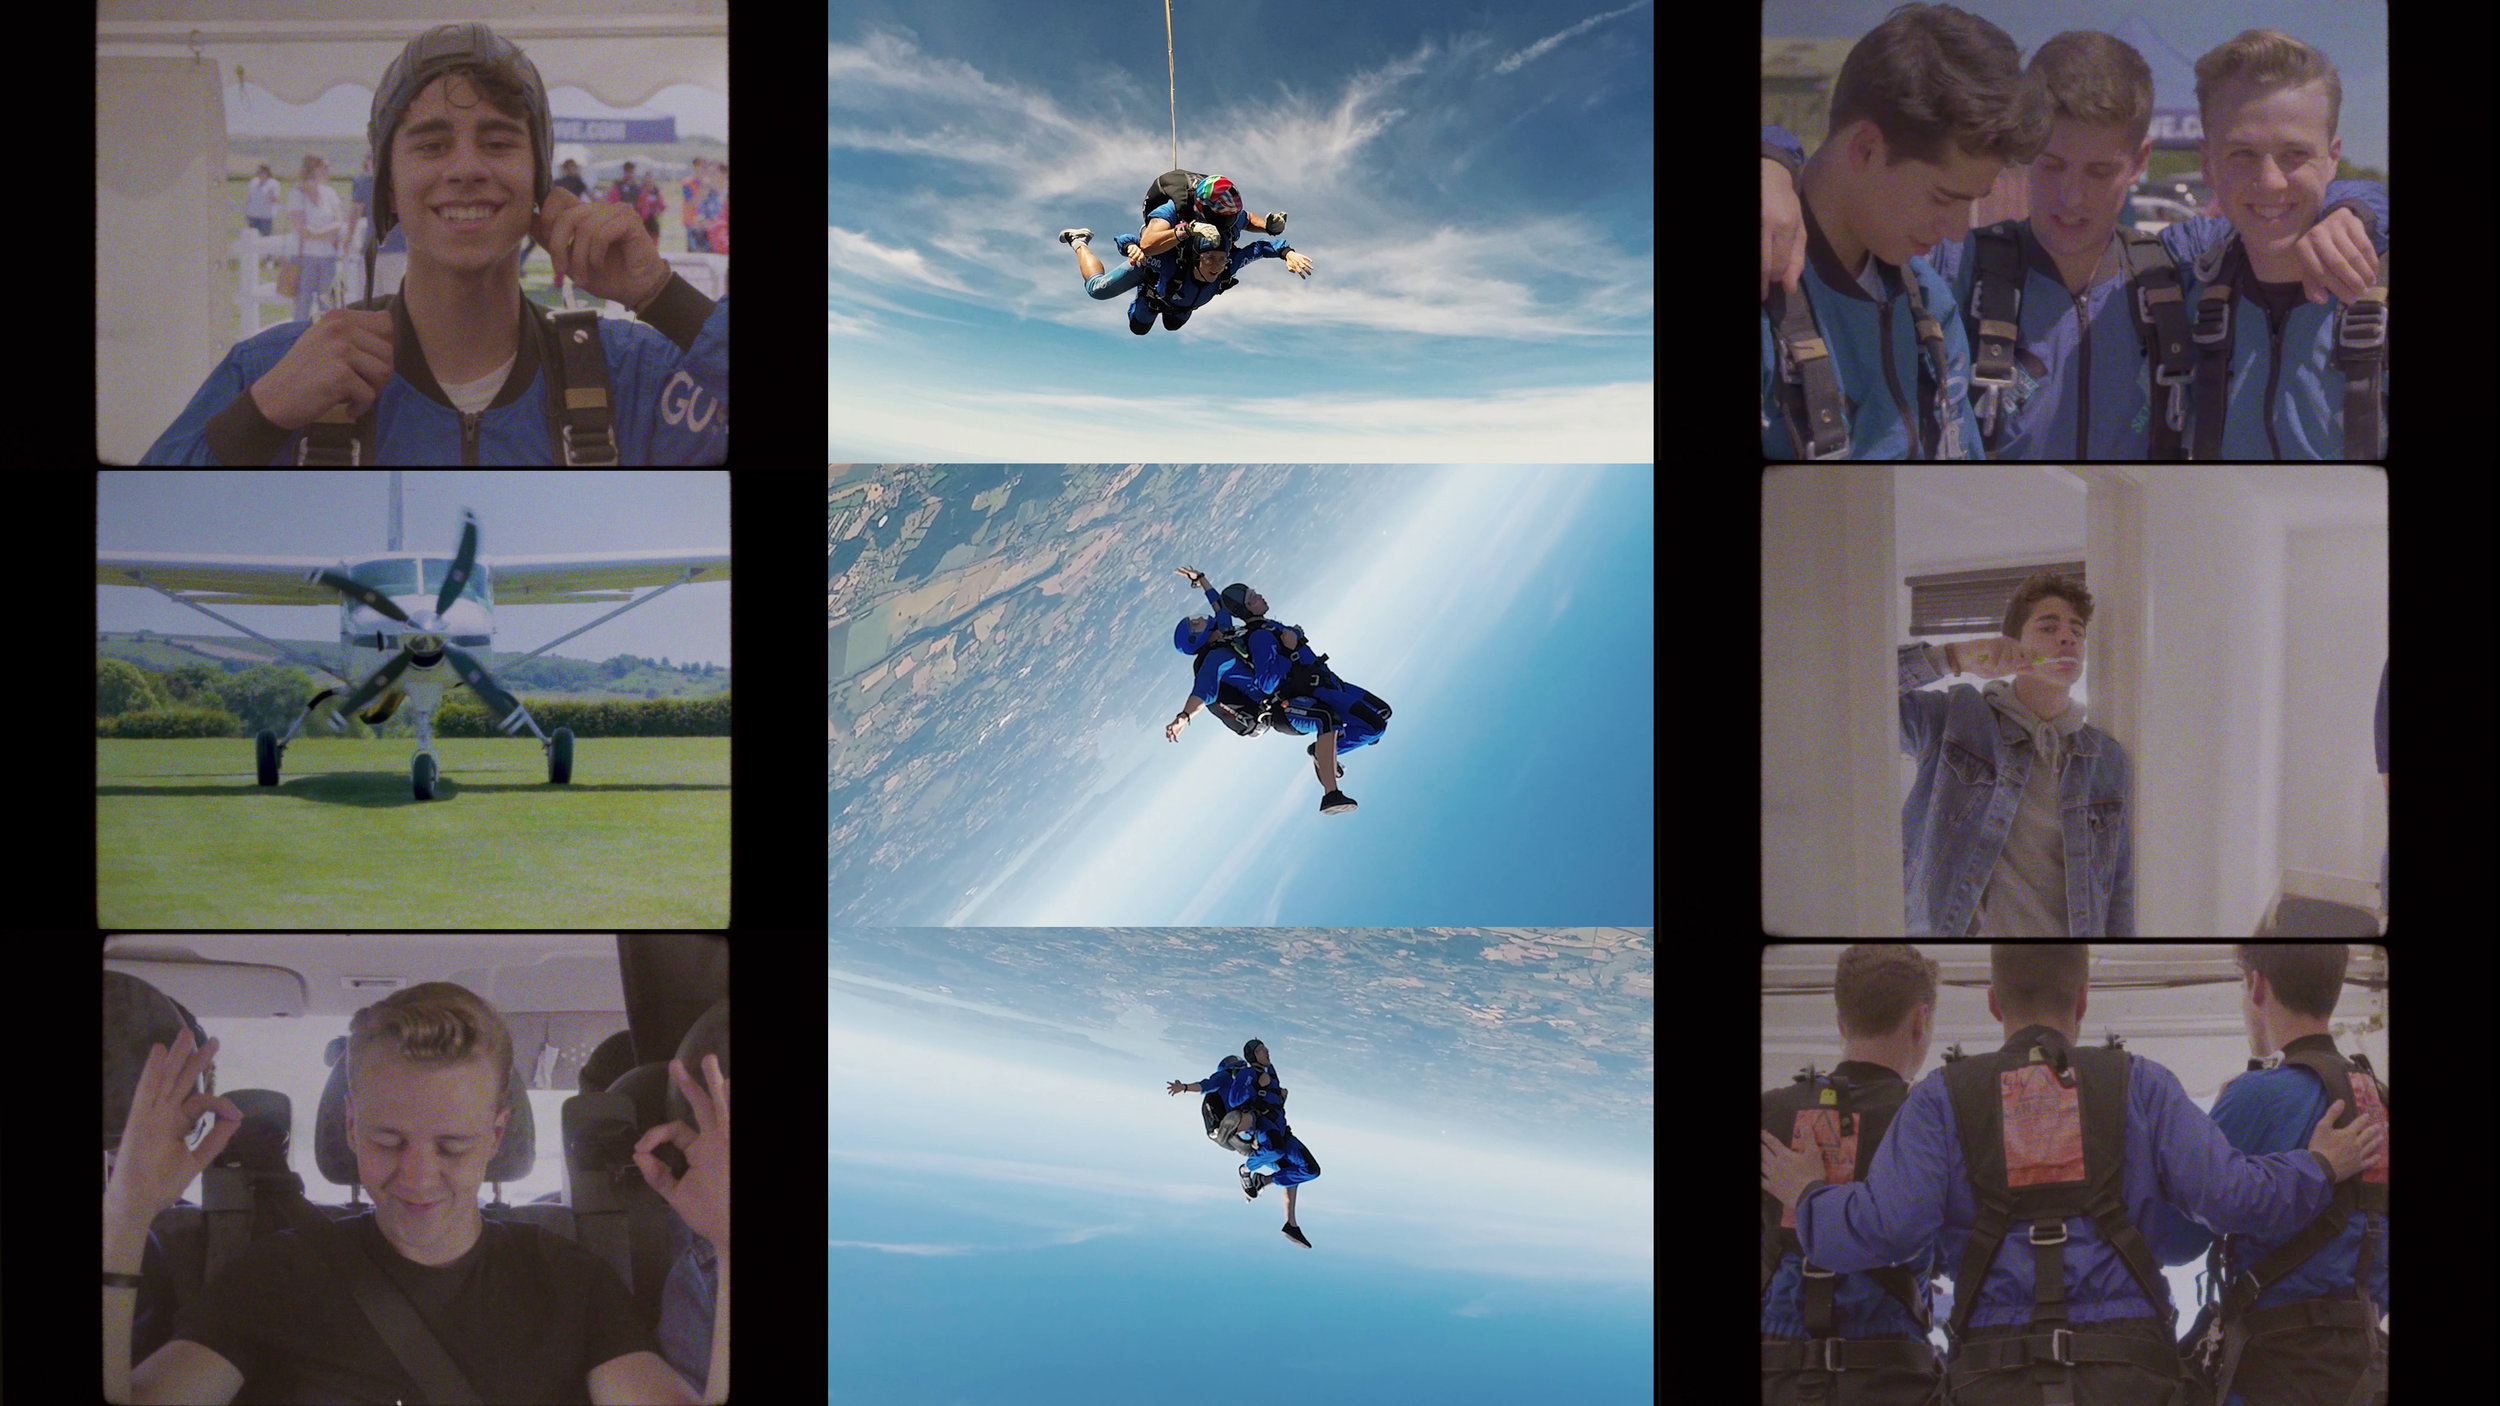 New_Rules_Mountains_SKYDIVE_Contact_Sheet.jpg